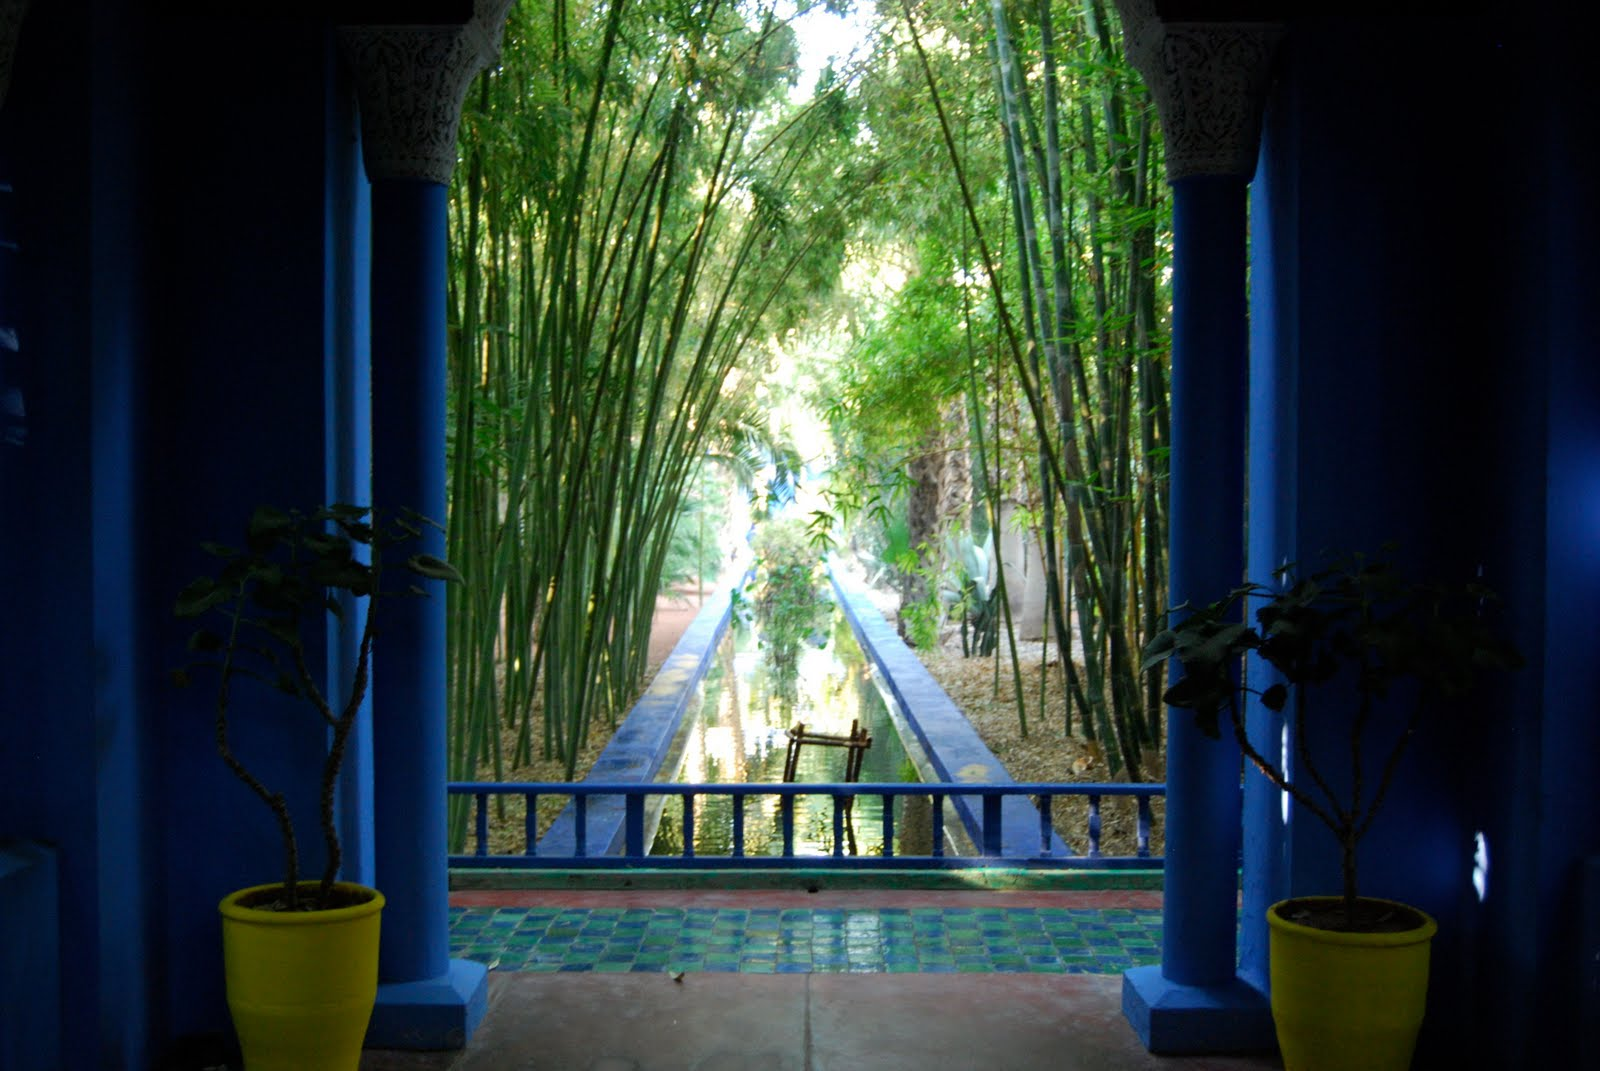 The josh also rises marrakesh jardin majorelle for Jardin yves saint laurent marrakech